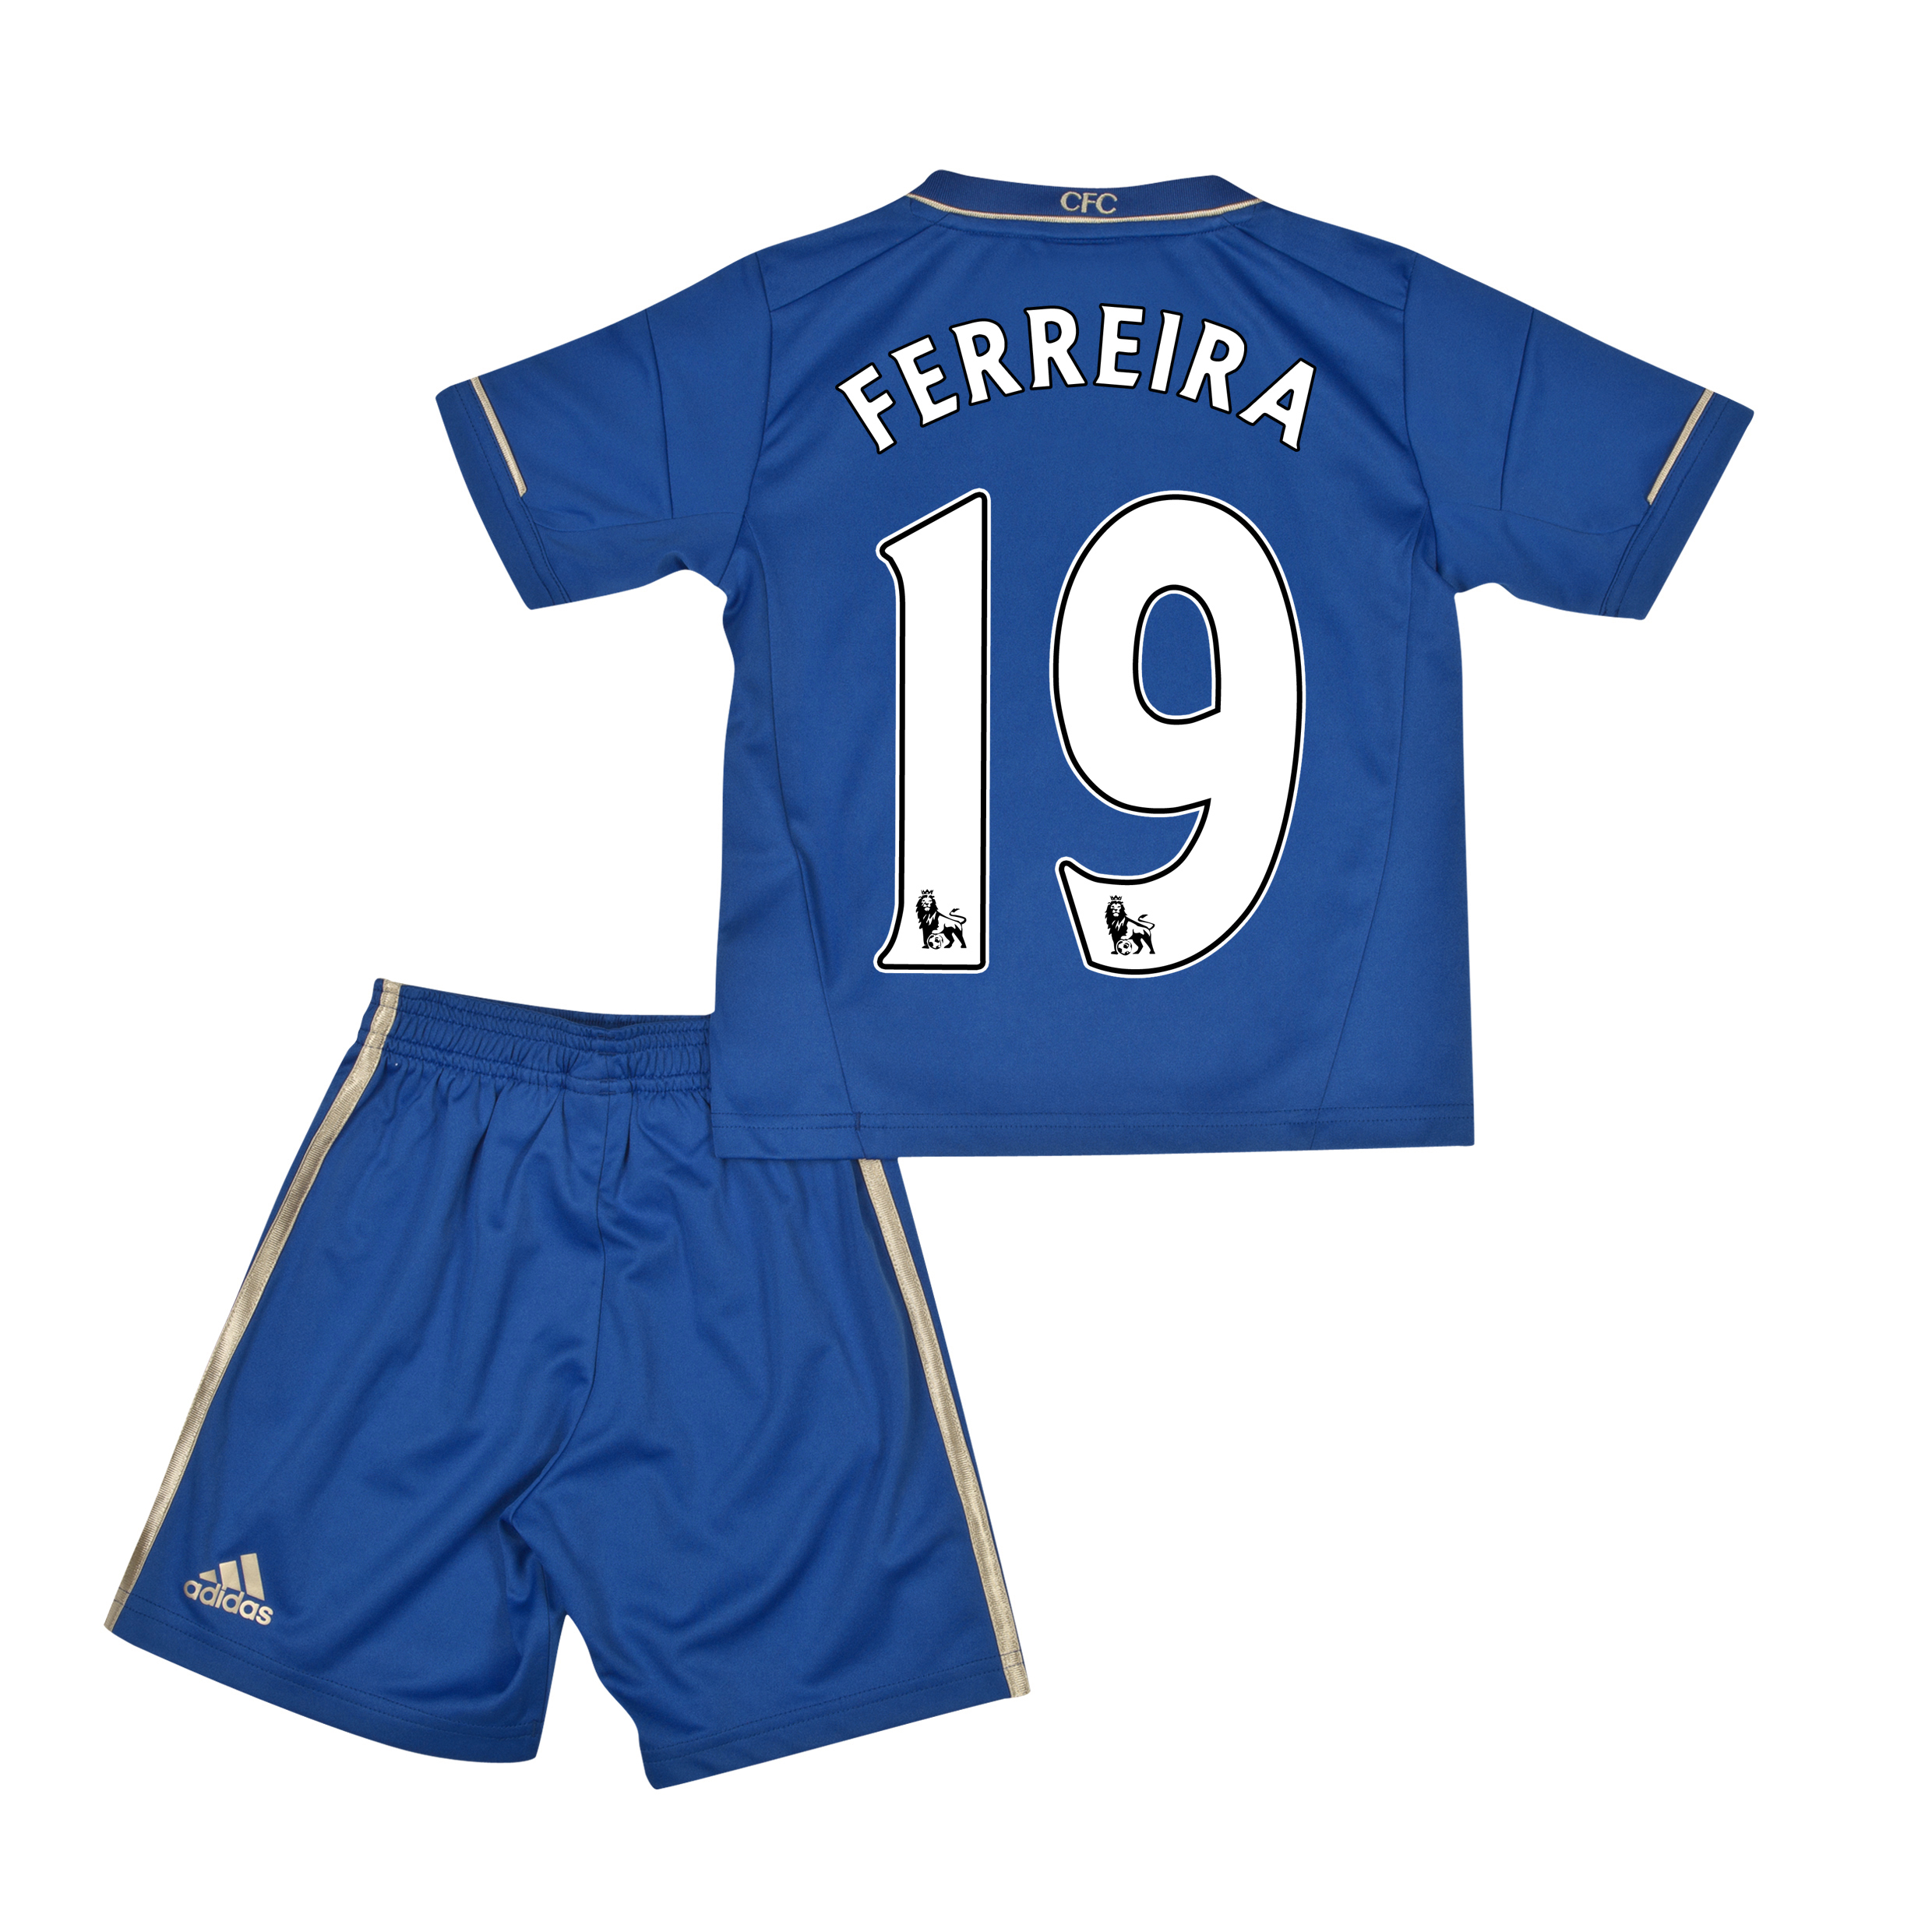 Chelsea Home Mini Kit 2012/13 with Ferreira 19 printing